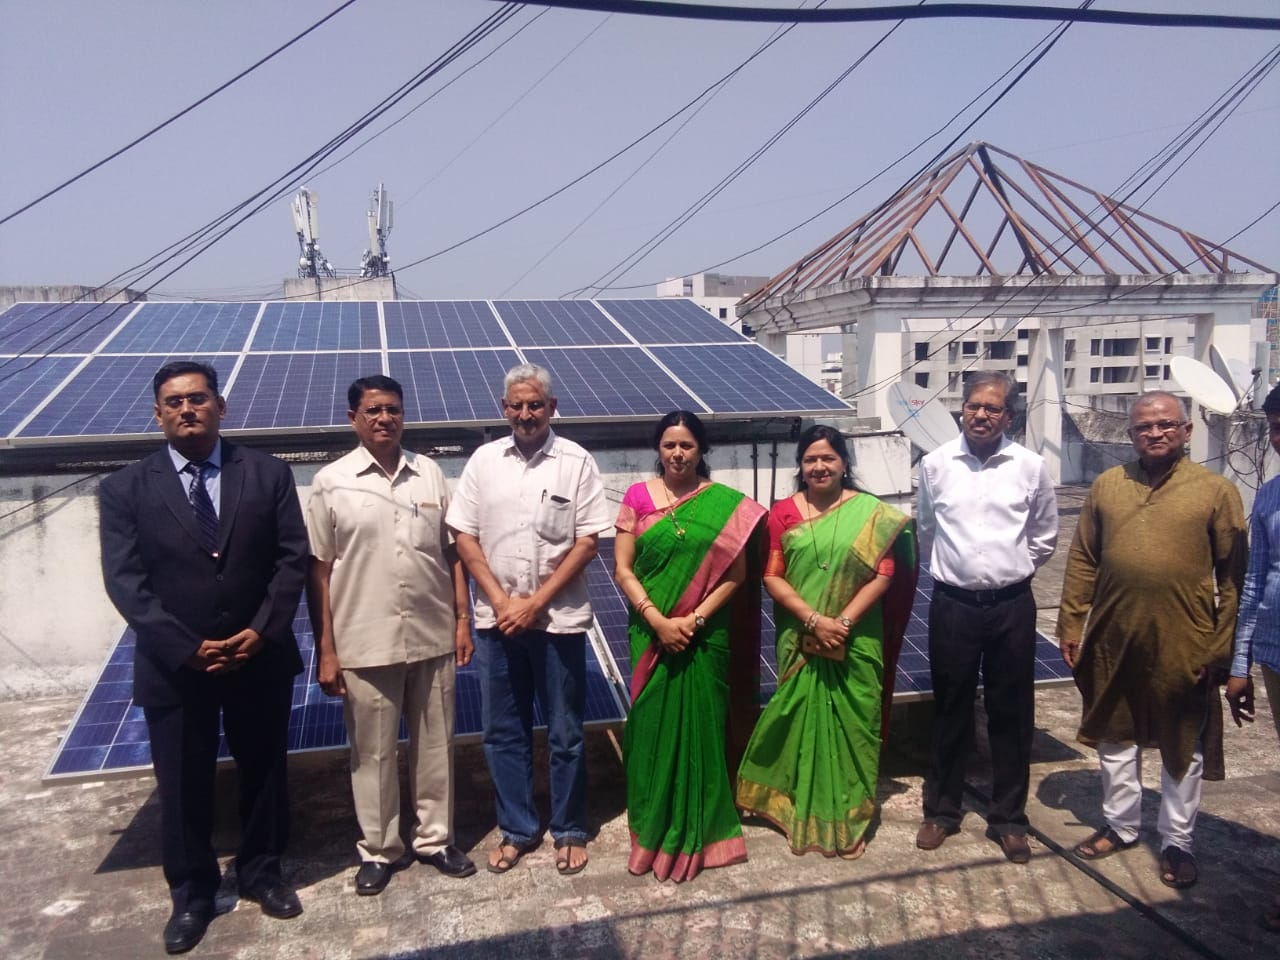 35KW On-Grid Rooftop Solar power plant with Net metering at Residential Society in Kothrud